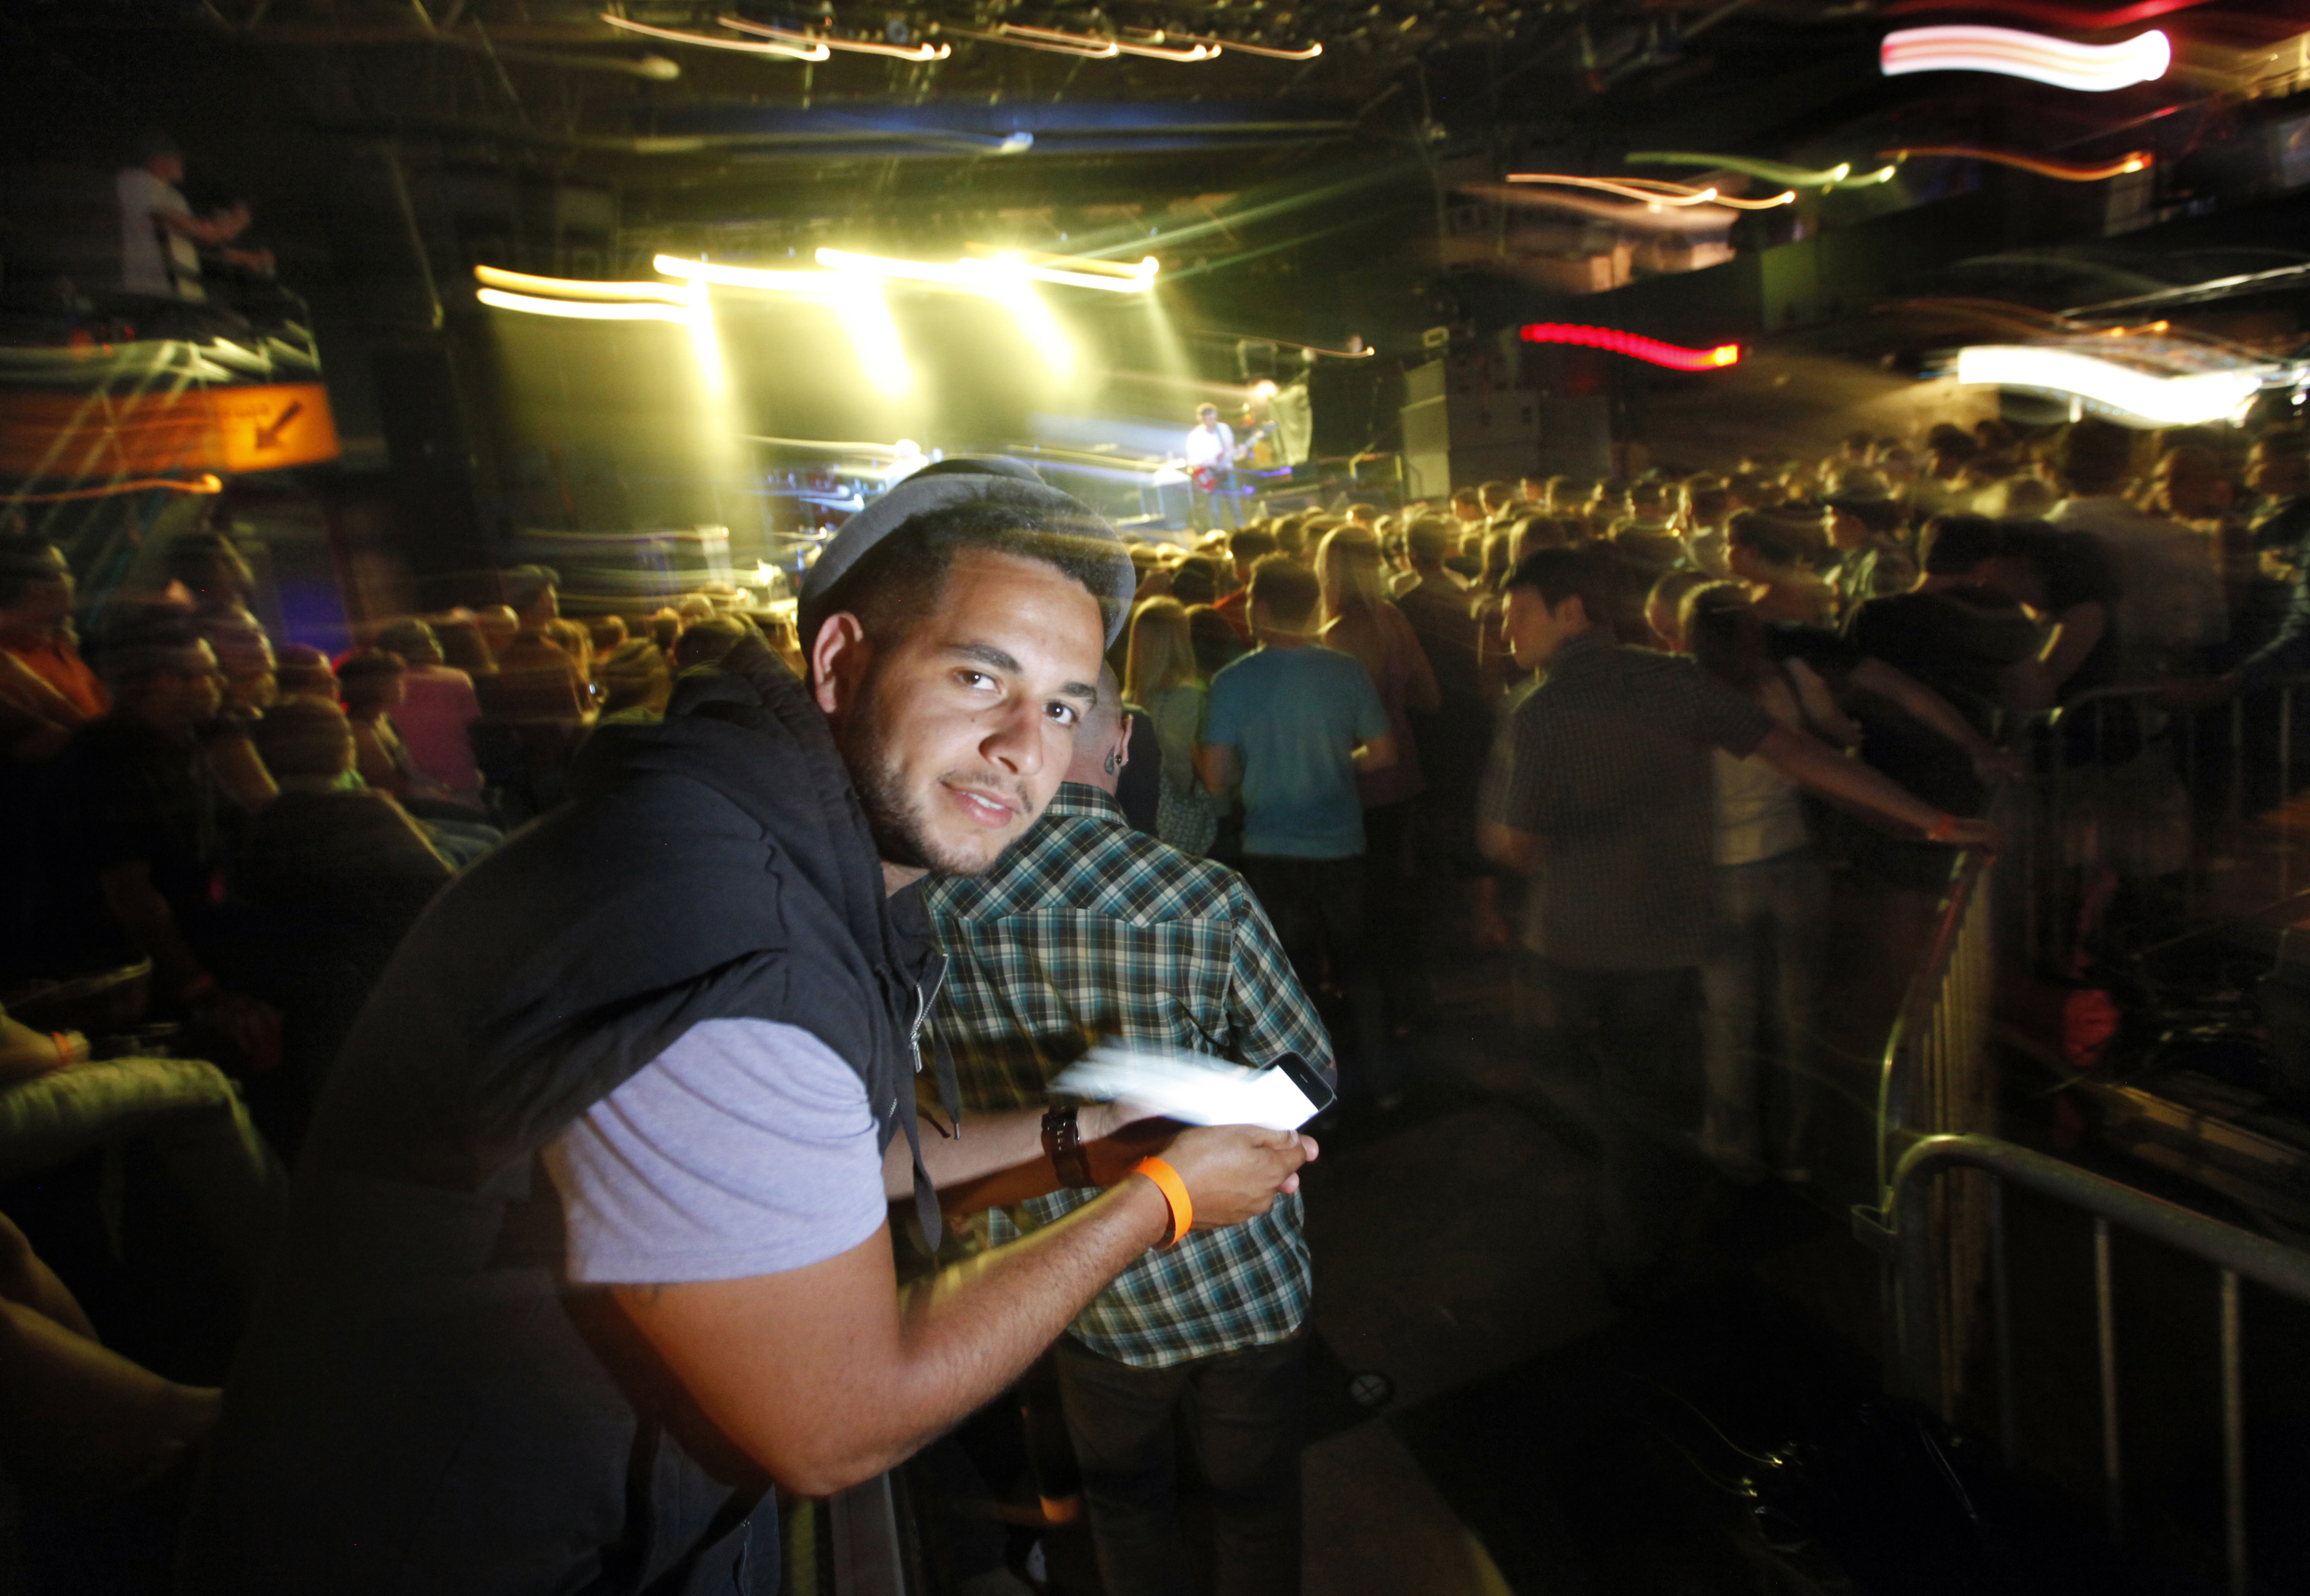 Social media user, Kareem Ahmed, arrives inside First Avenue on June 5 in Minneapolis, Minnesota. On his phone, Ahmed checked in on the club's Foursqu...